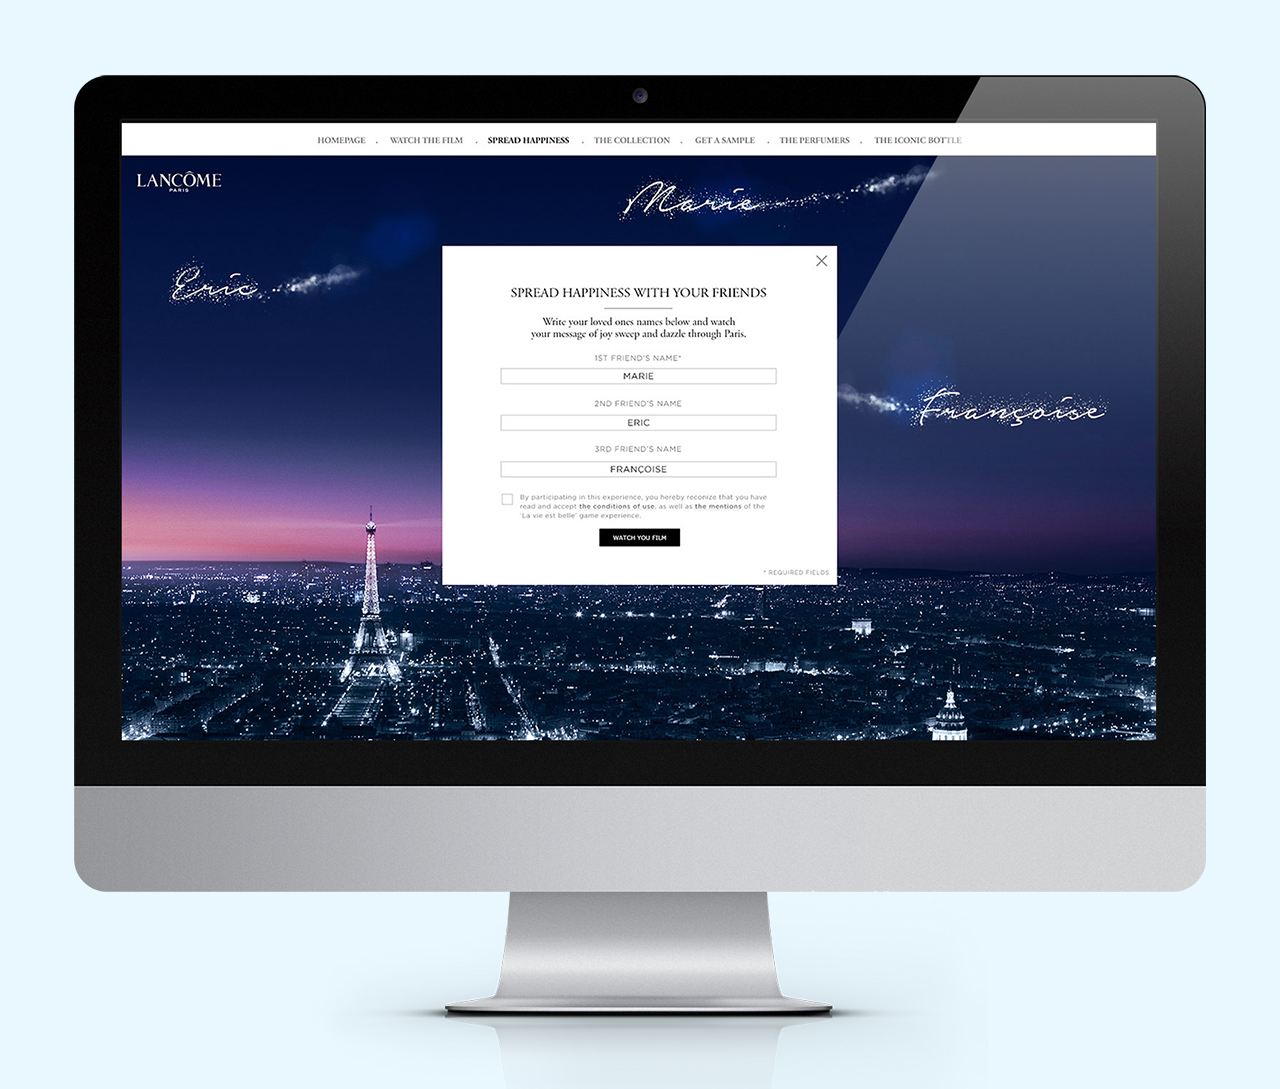 3-lancome-digital-website-interactive-inoui-studio-paris